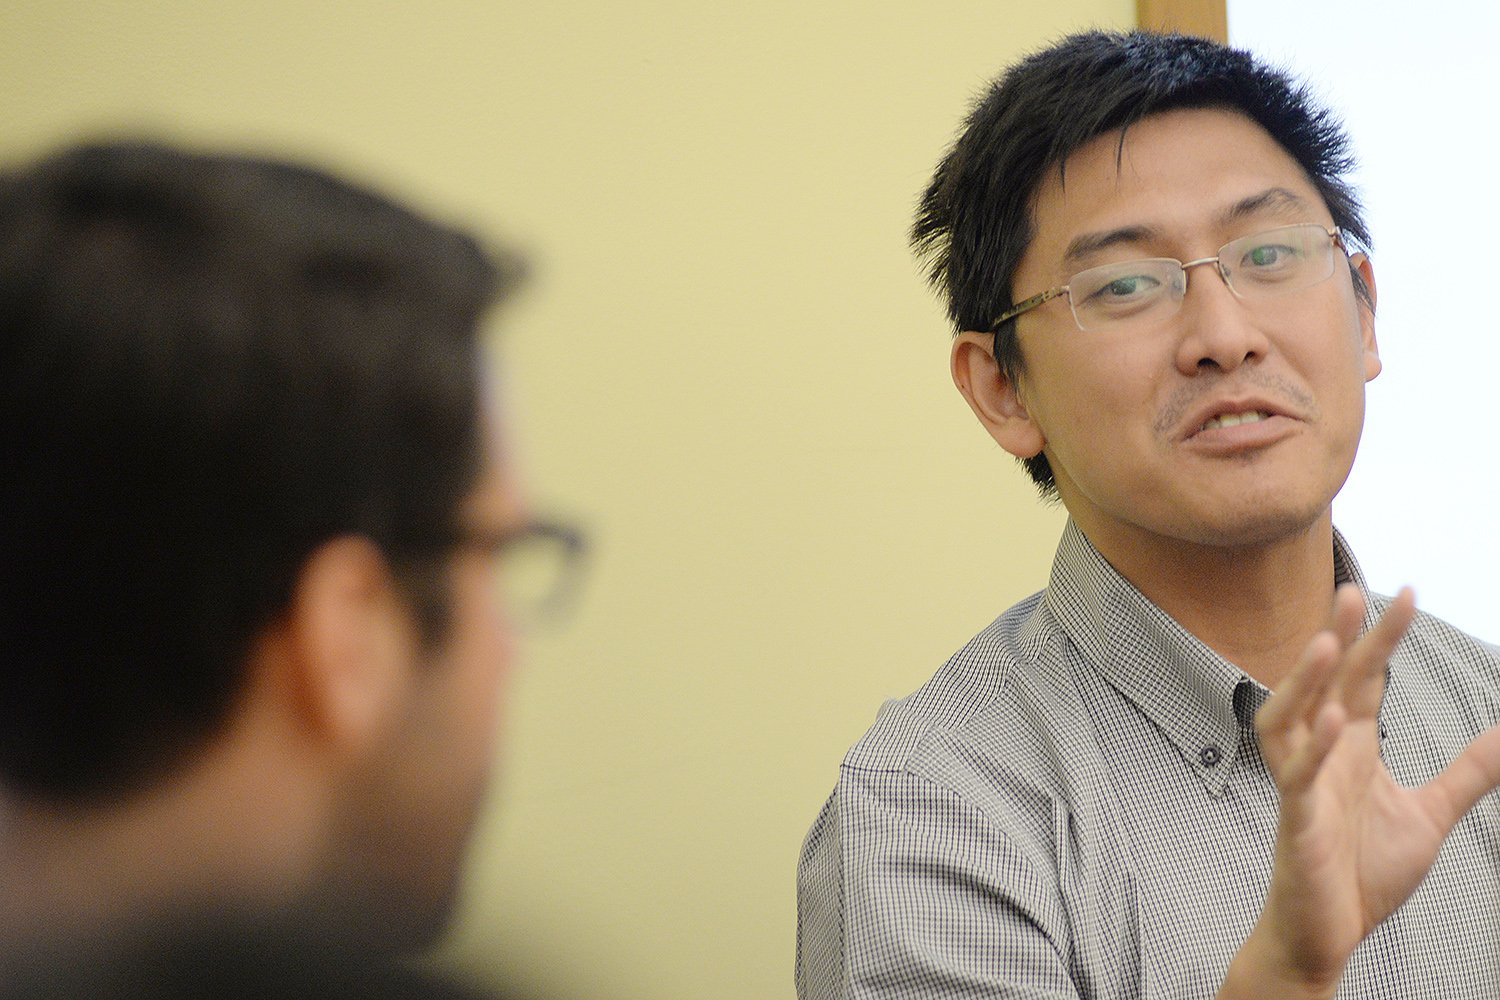 """Ying Jia Tan, assistant professor of history, attended the discussionto learn about the concerns of Asian-American students. He spoke about his experience as faculty advisor to the Asian Students Association at his previous institution anddrew parallels between the racial categorization in his home country ofSingapore and the United States. The term """"Asian American"""" was analogous to the """"others"""" category in Singapore."""